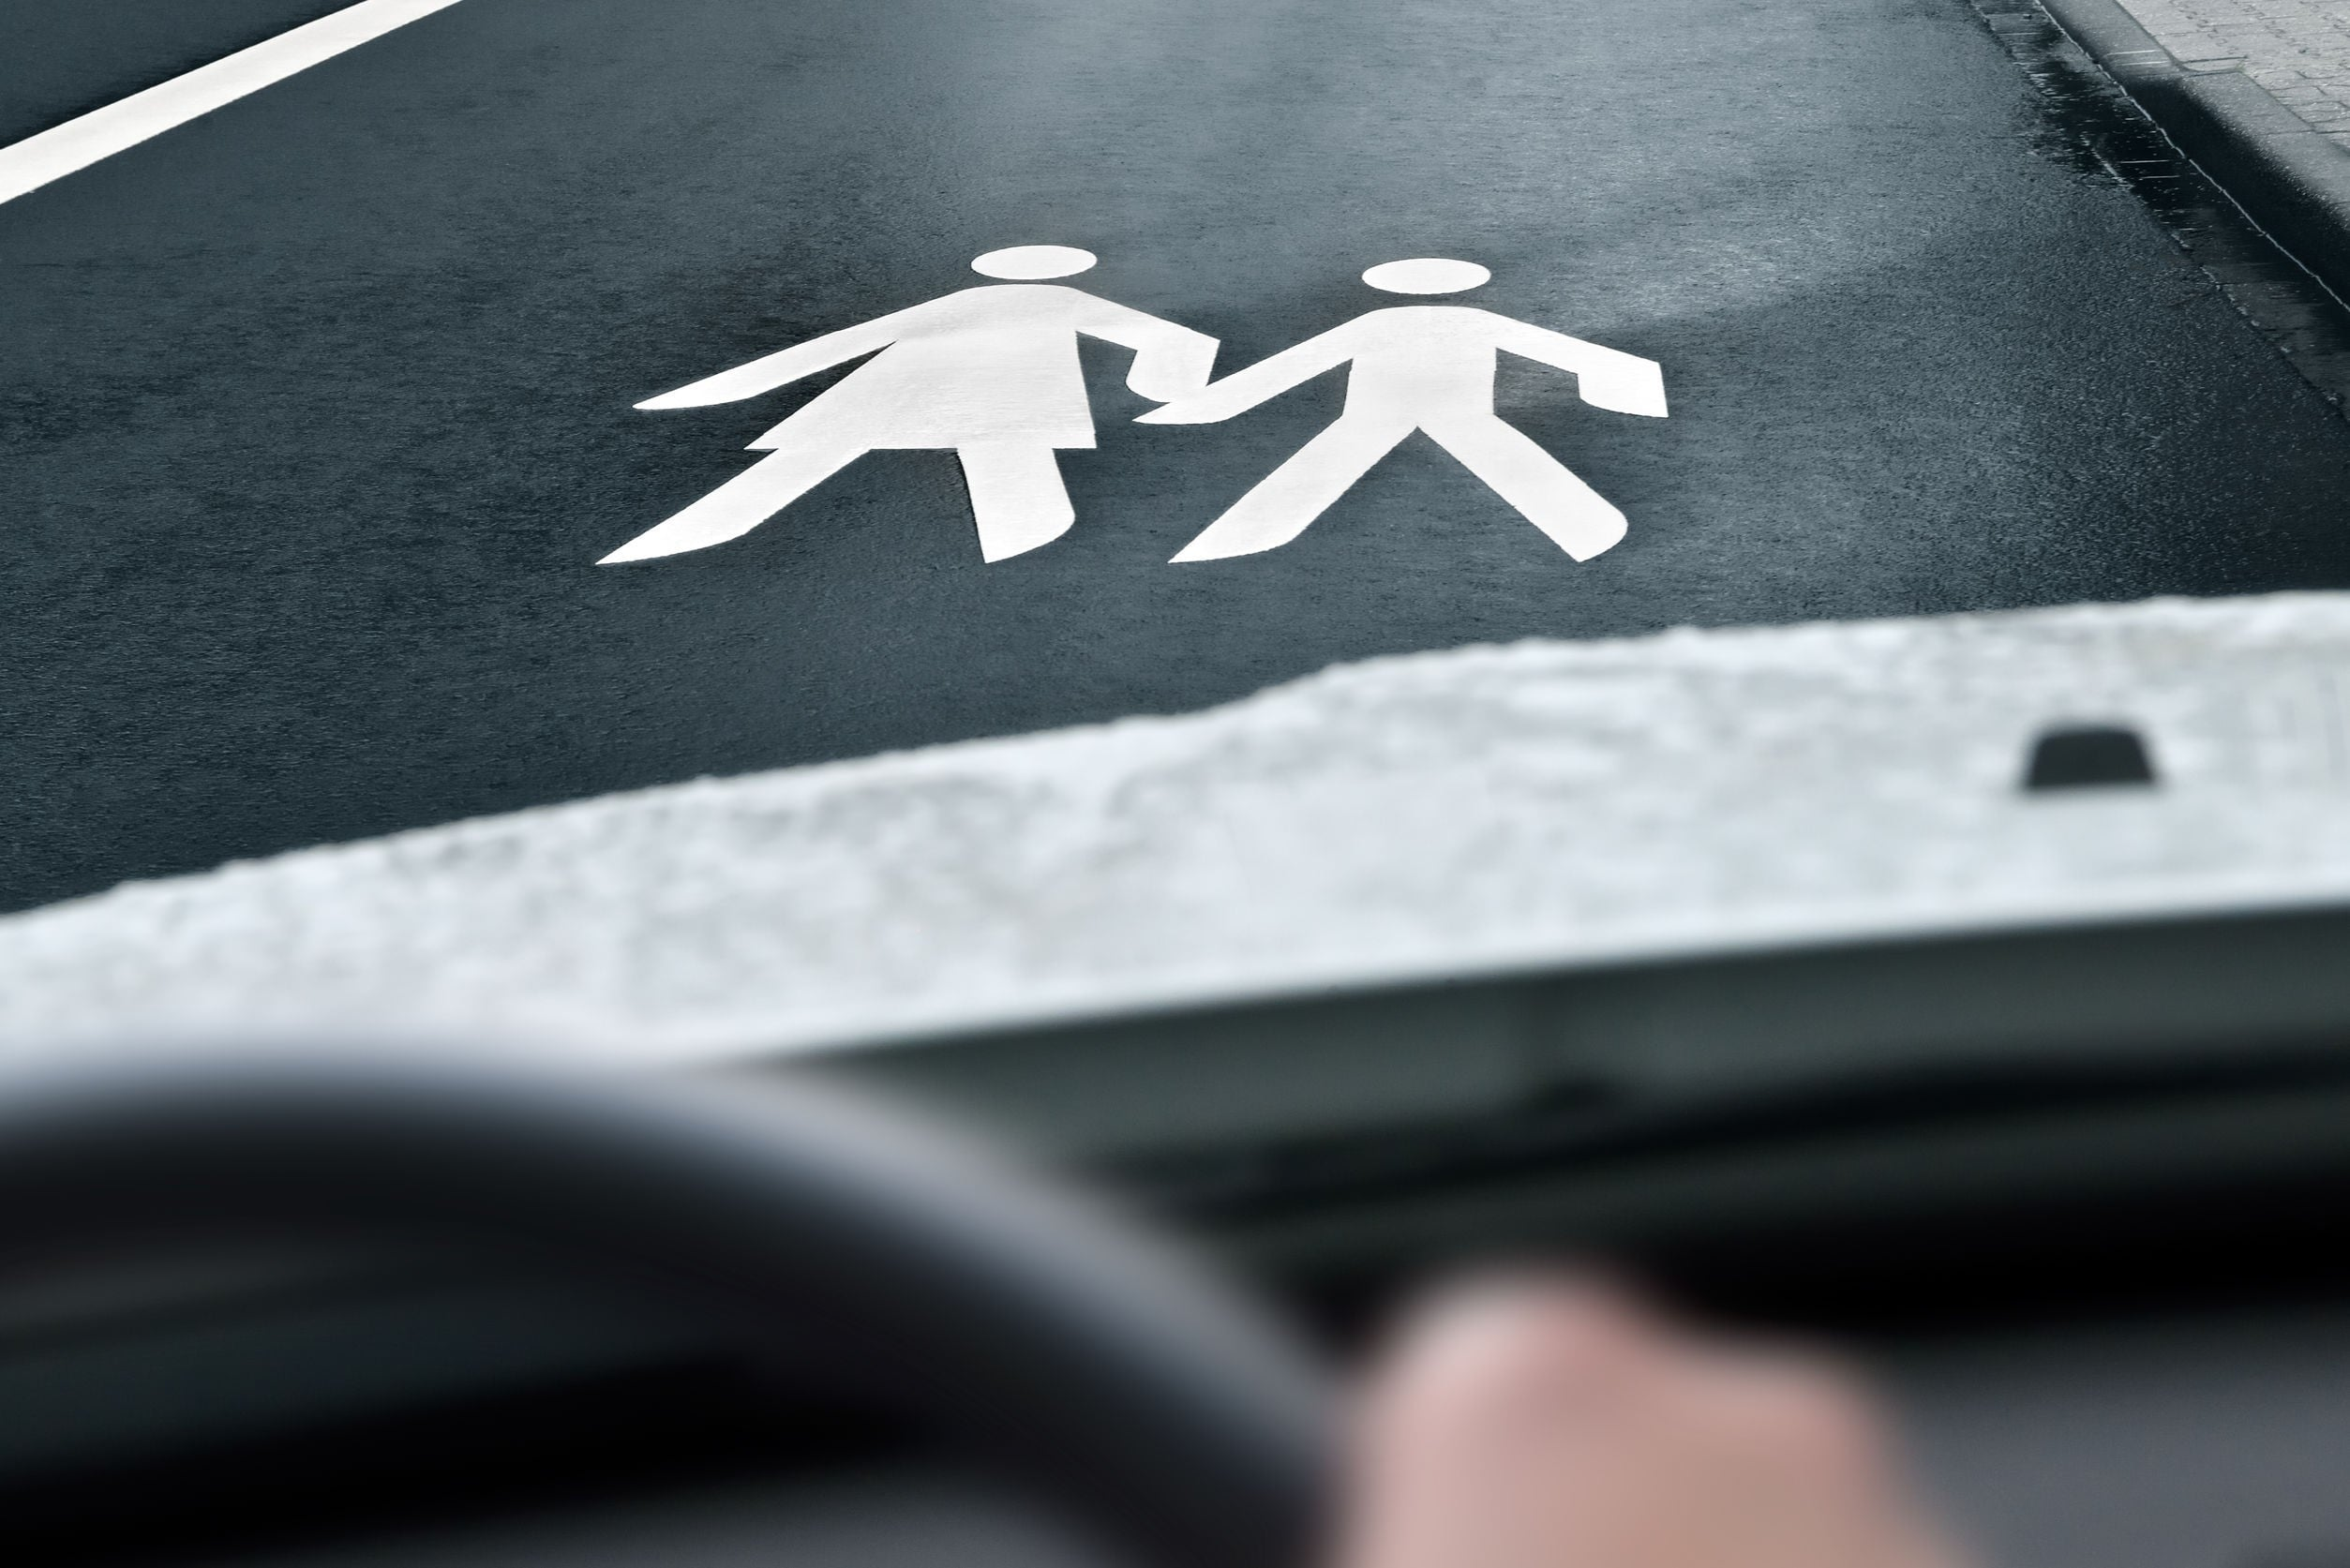 Suing Someone for Negligence in a Pedestrian Accident in Florida